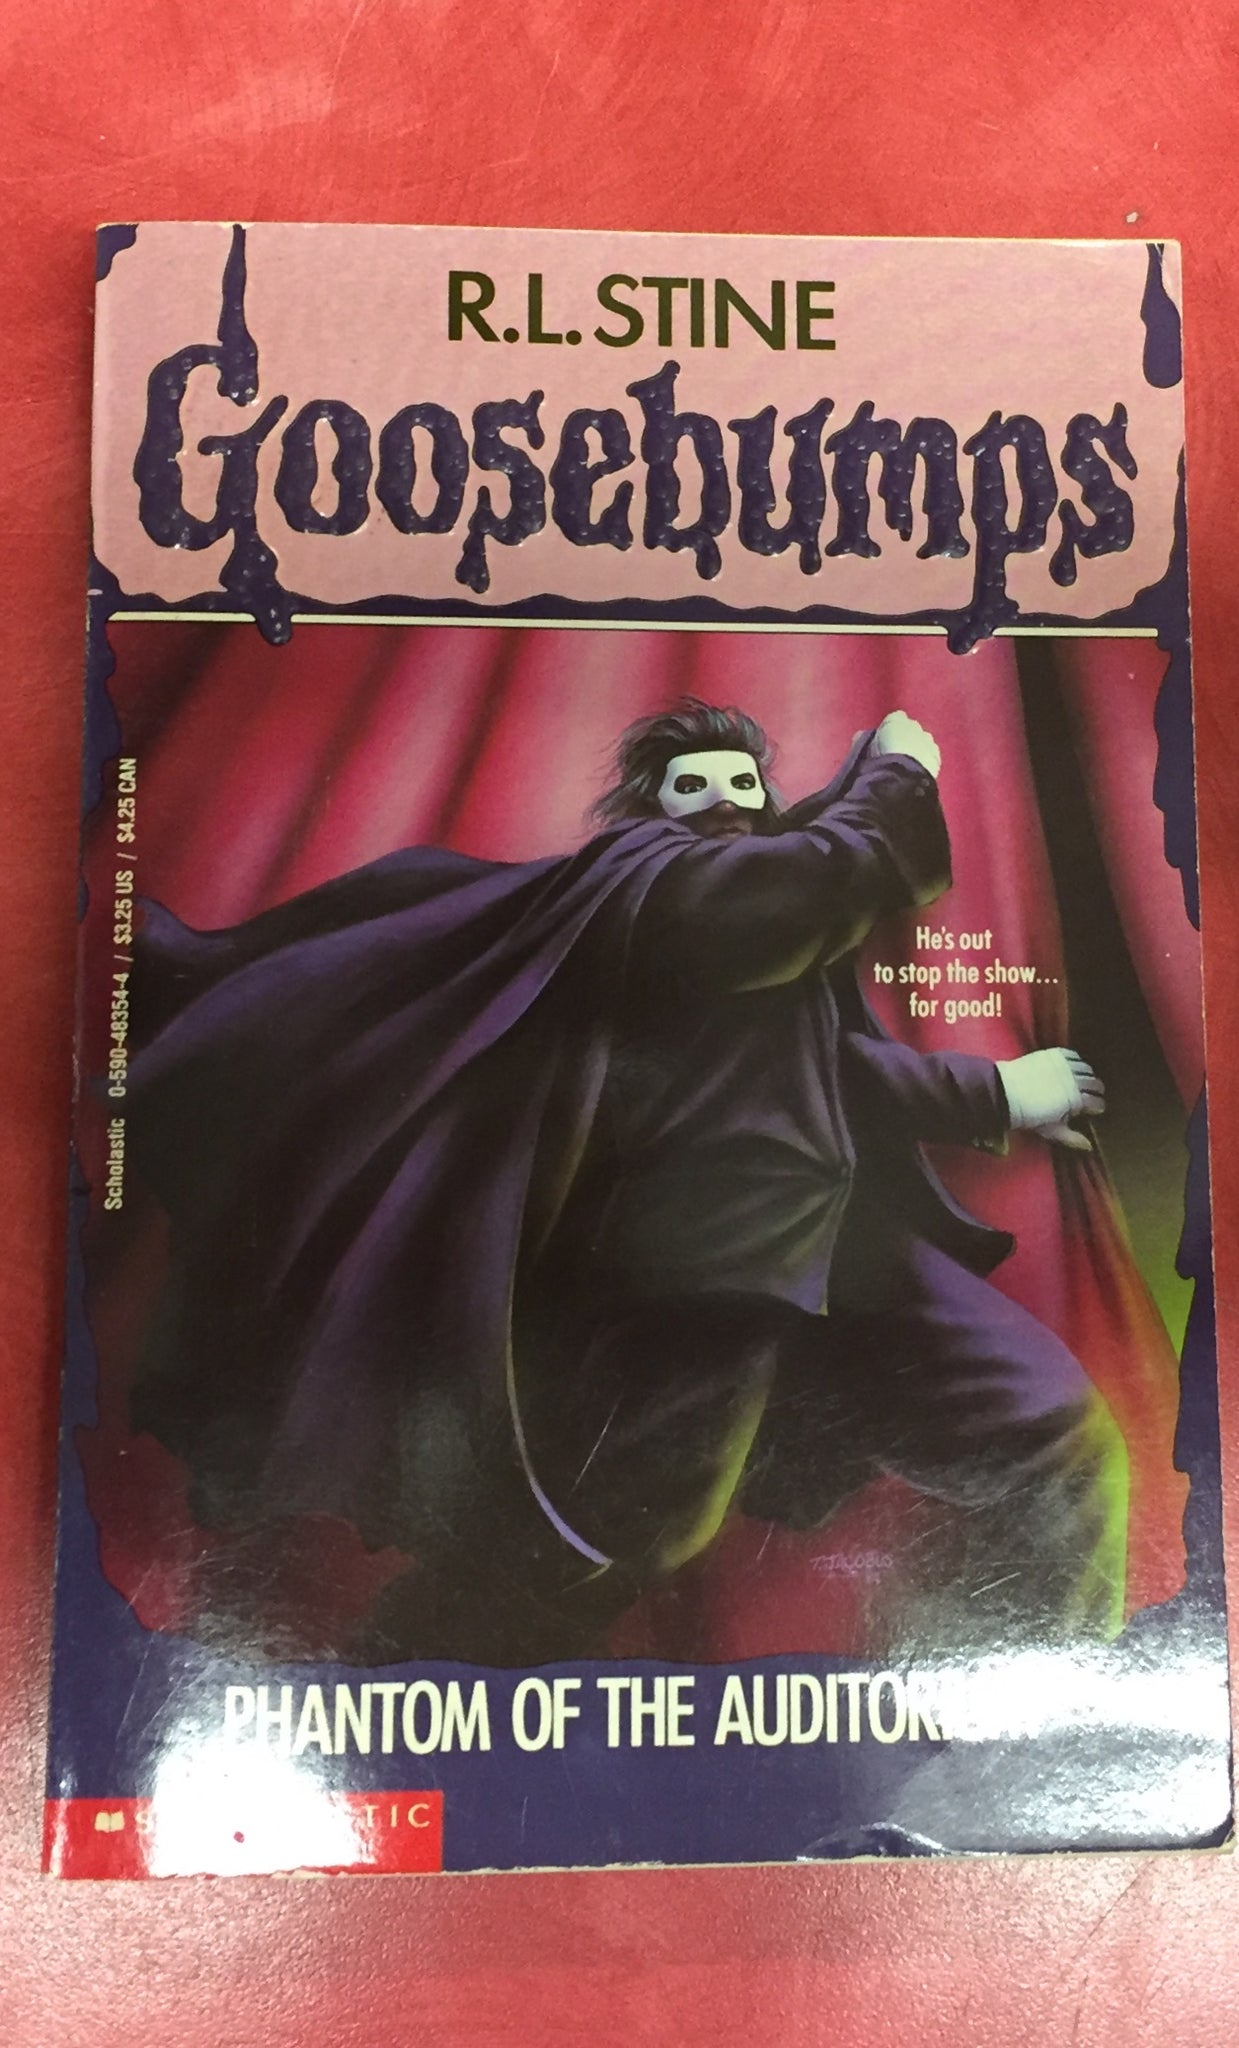 Goosebumps R. L. Stine Phantom of the auditorium Issue 24